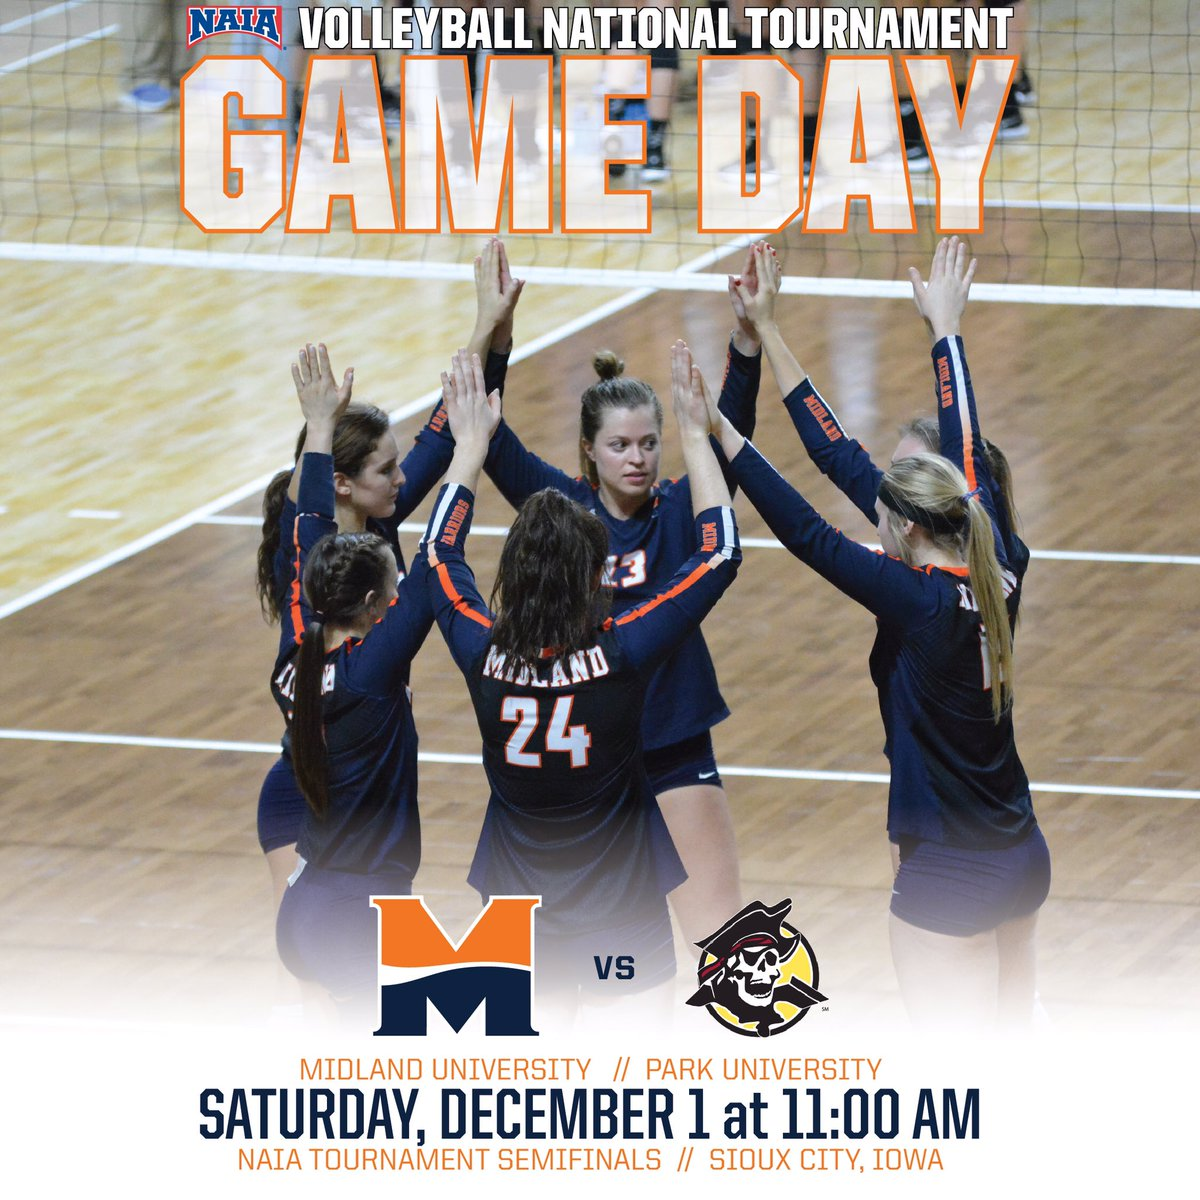 Hey #WarriorNation!!! It is #GameDay for one last time this season for @Midland_VBall!!! The Final Four begins at 11 a.m. and will be streamed live on ESPN3!!! #LetsGo   🕚-11am 📍-Sioux City, Iowa 🏐-Midland vs. Park 🖥-http://www.espn.com/watch/_/id/3460185/naia-womens-volleyball-tournament … 📈-http://www.dakstats.com/websync/Pages/Tournament/TournamentPage.aspx?association=10&sg=WVB&tour=2672 …